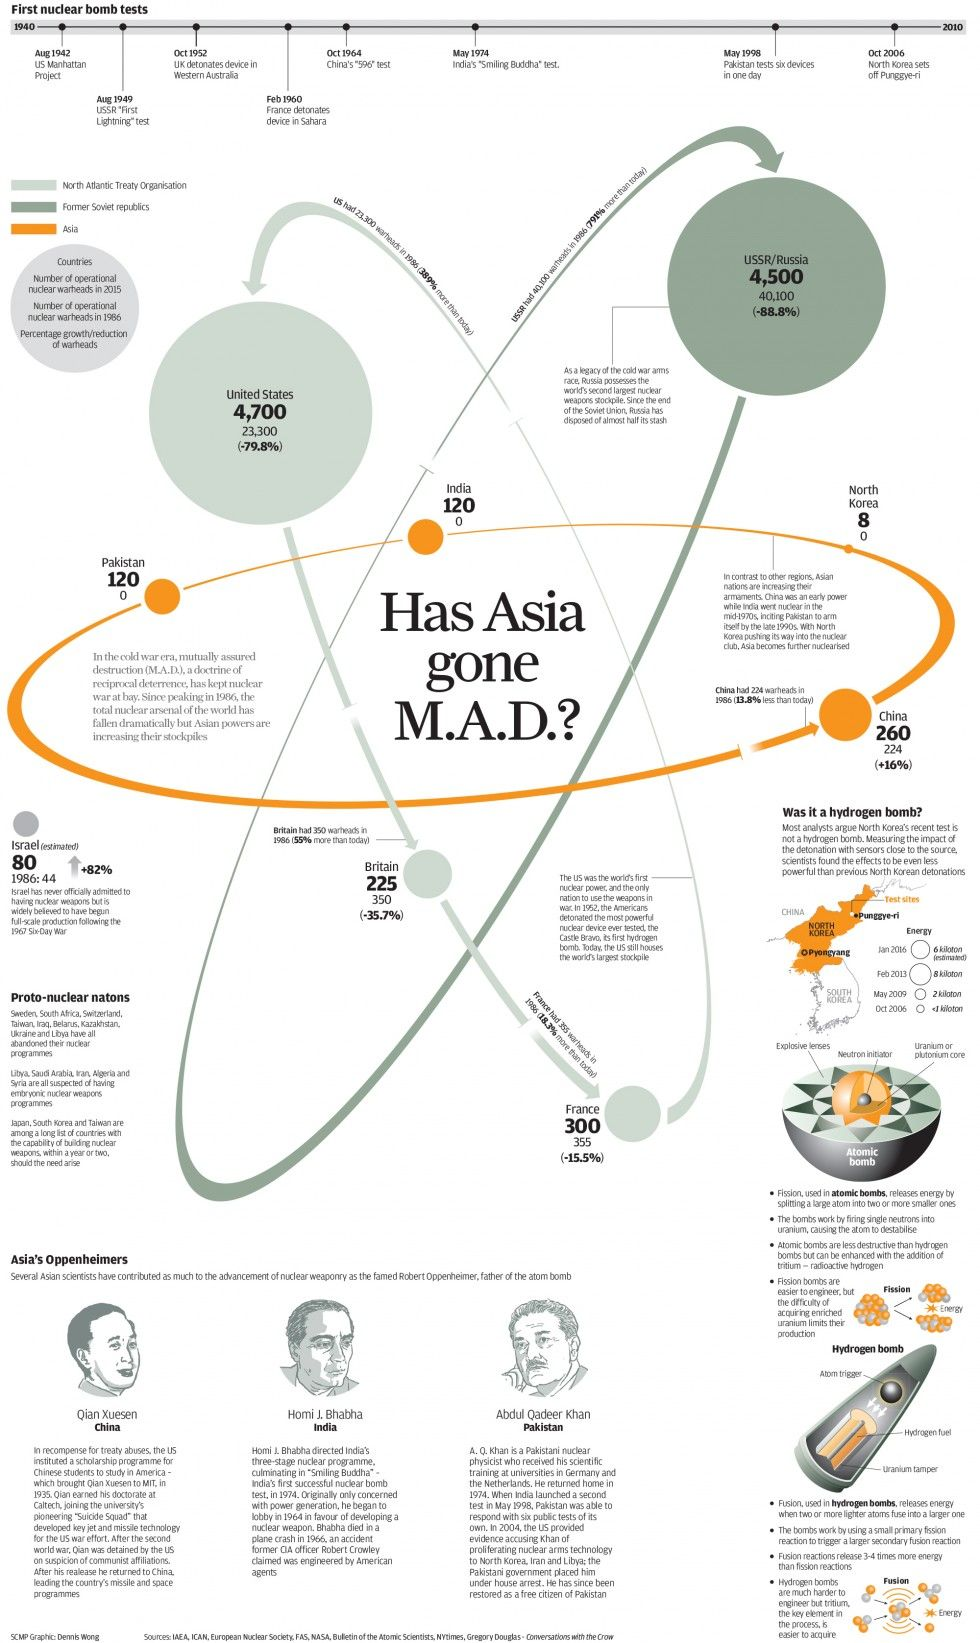 INFOGRAPHIC: Has Asia gone M.A.D.?